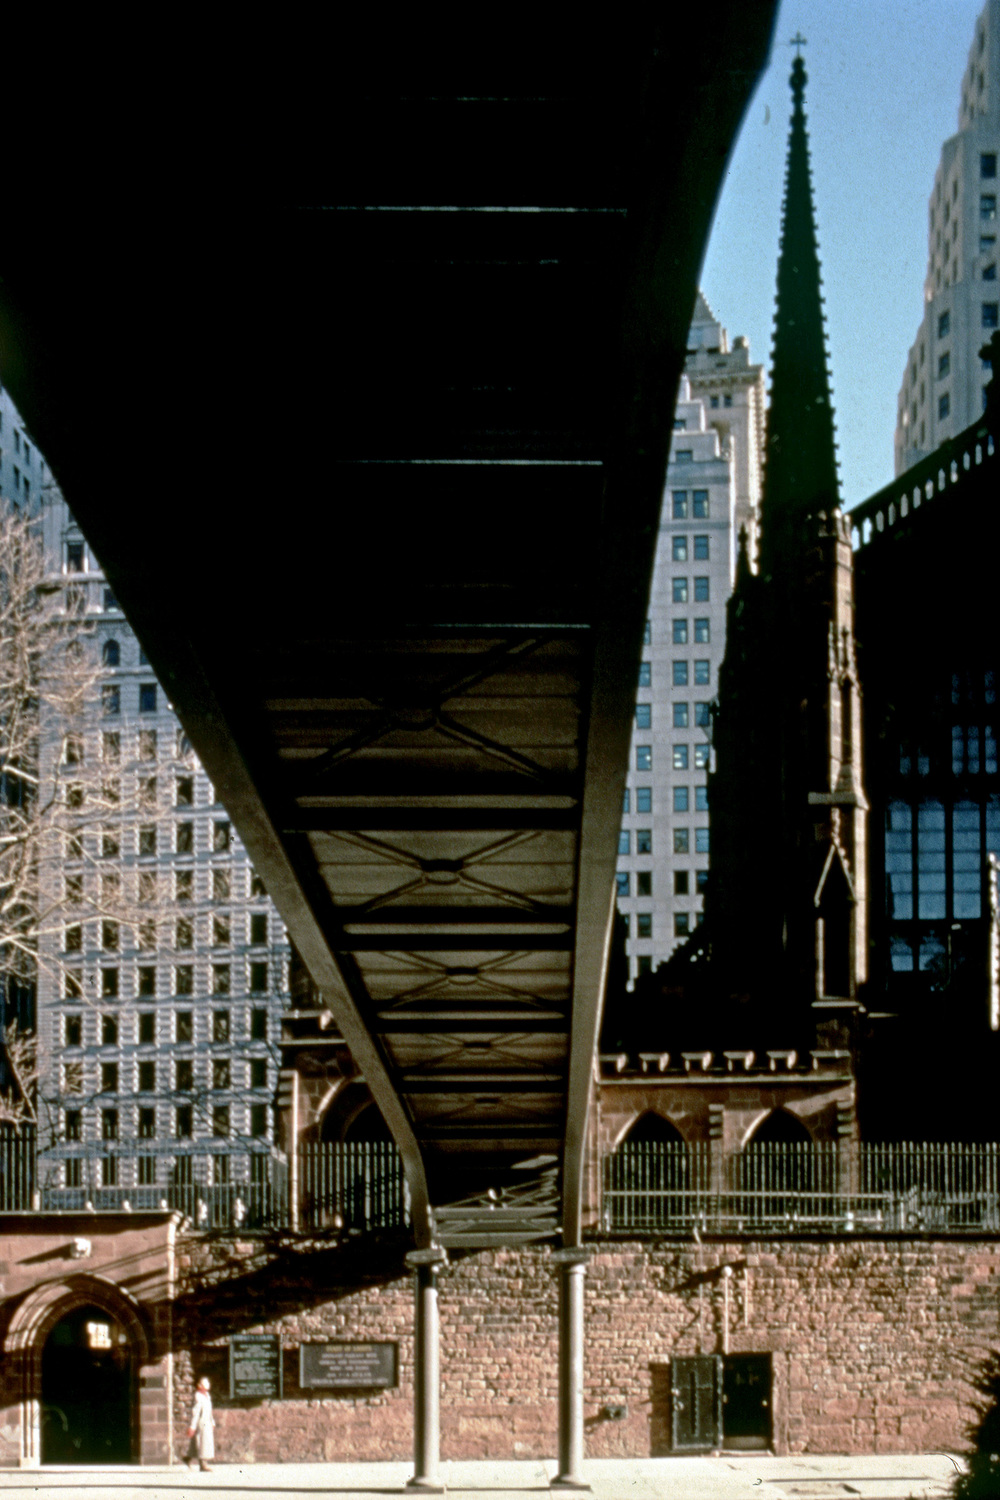 Trinity - Bridge Shot From Underneath.jpg